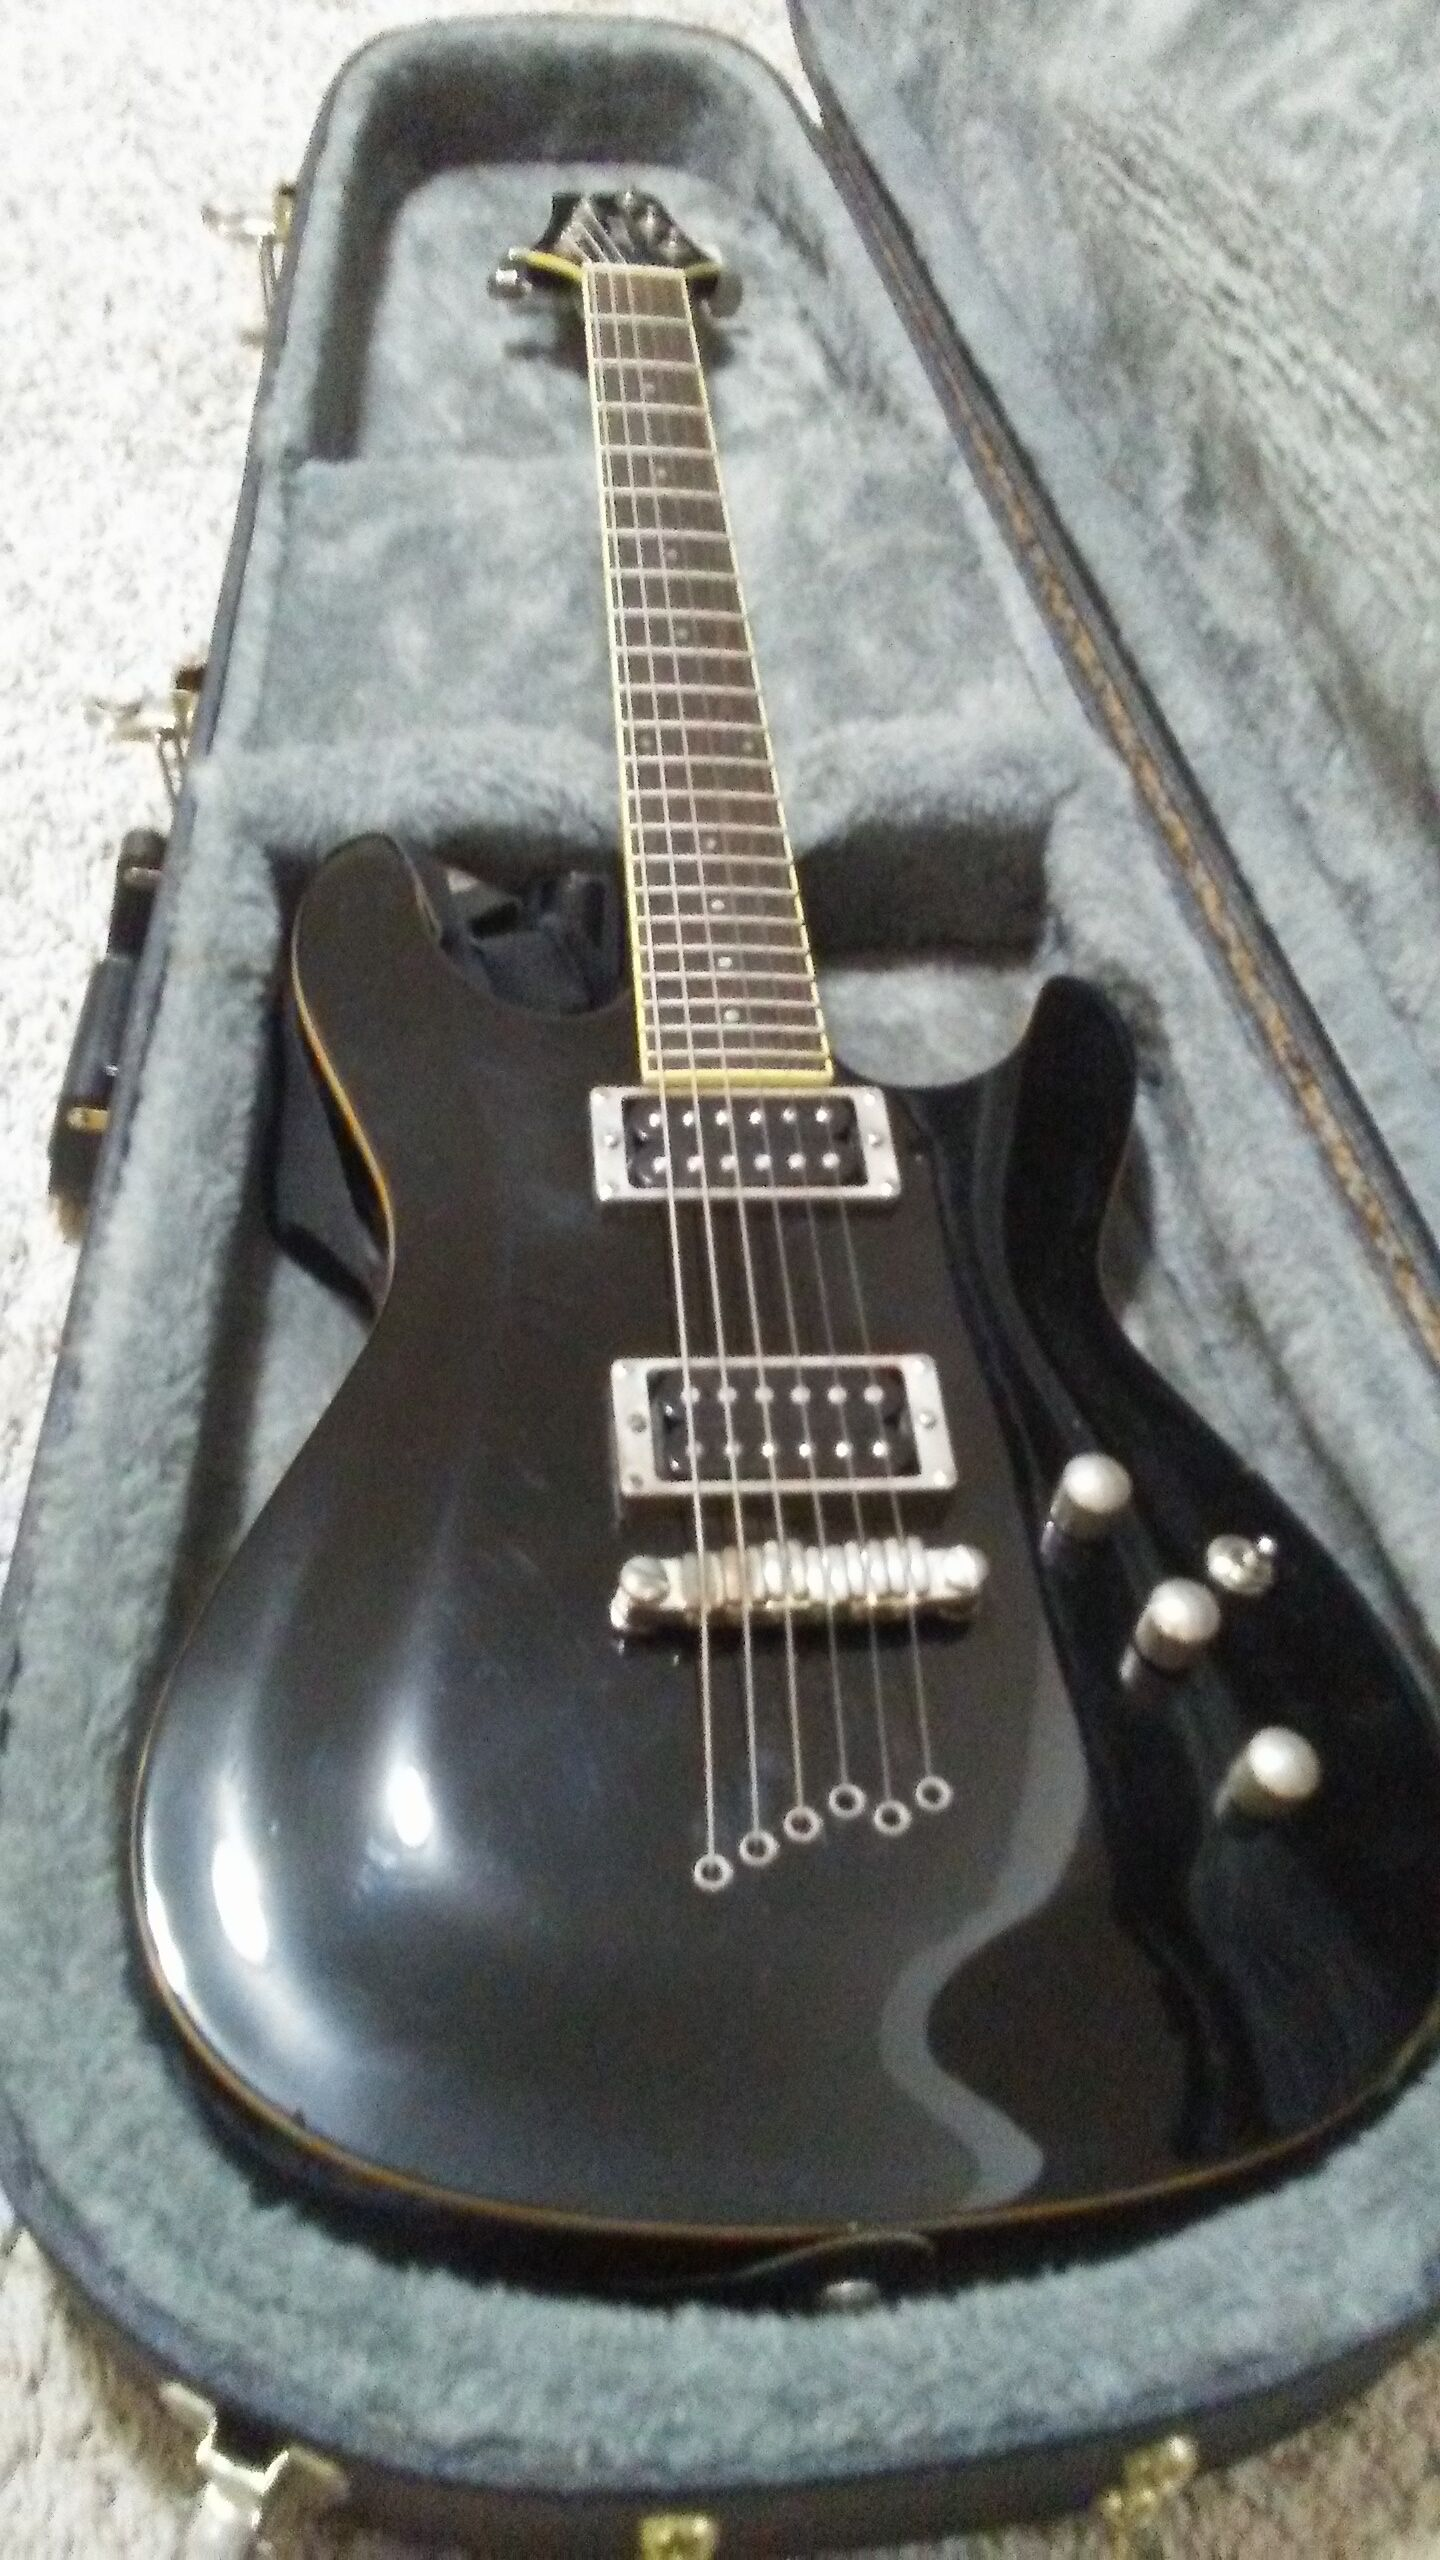 How do I find out what model this guitar is? | Ibanez Wiki